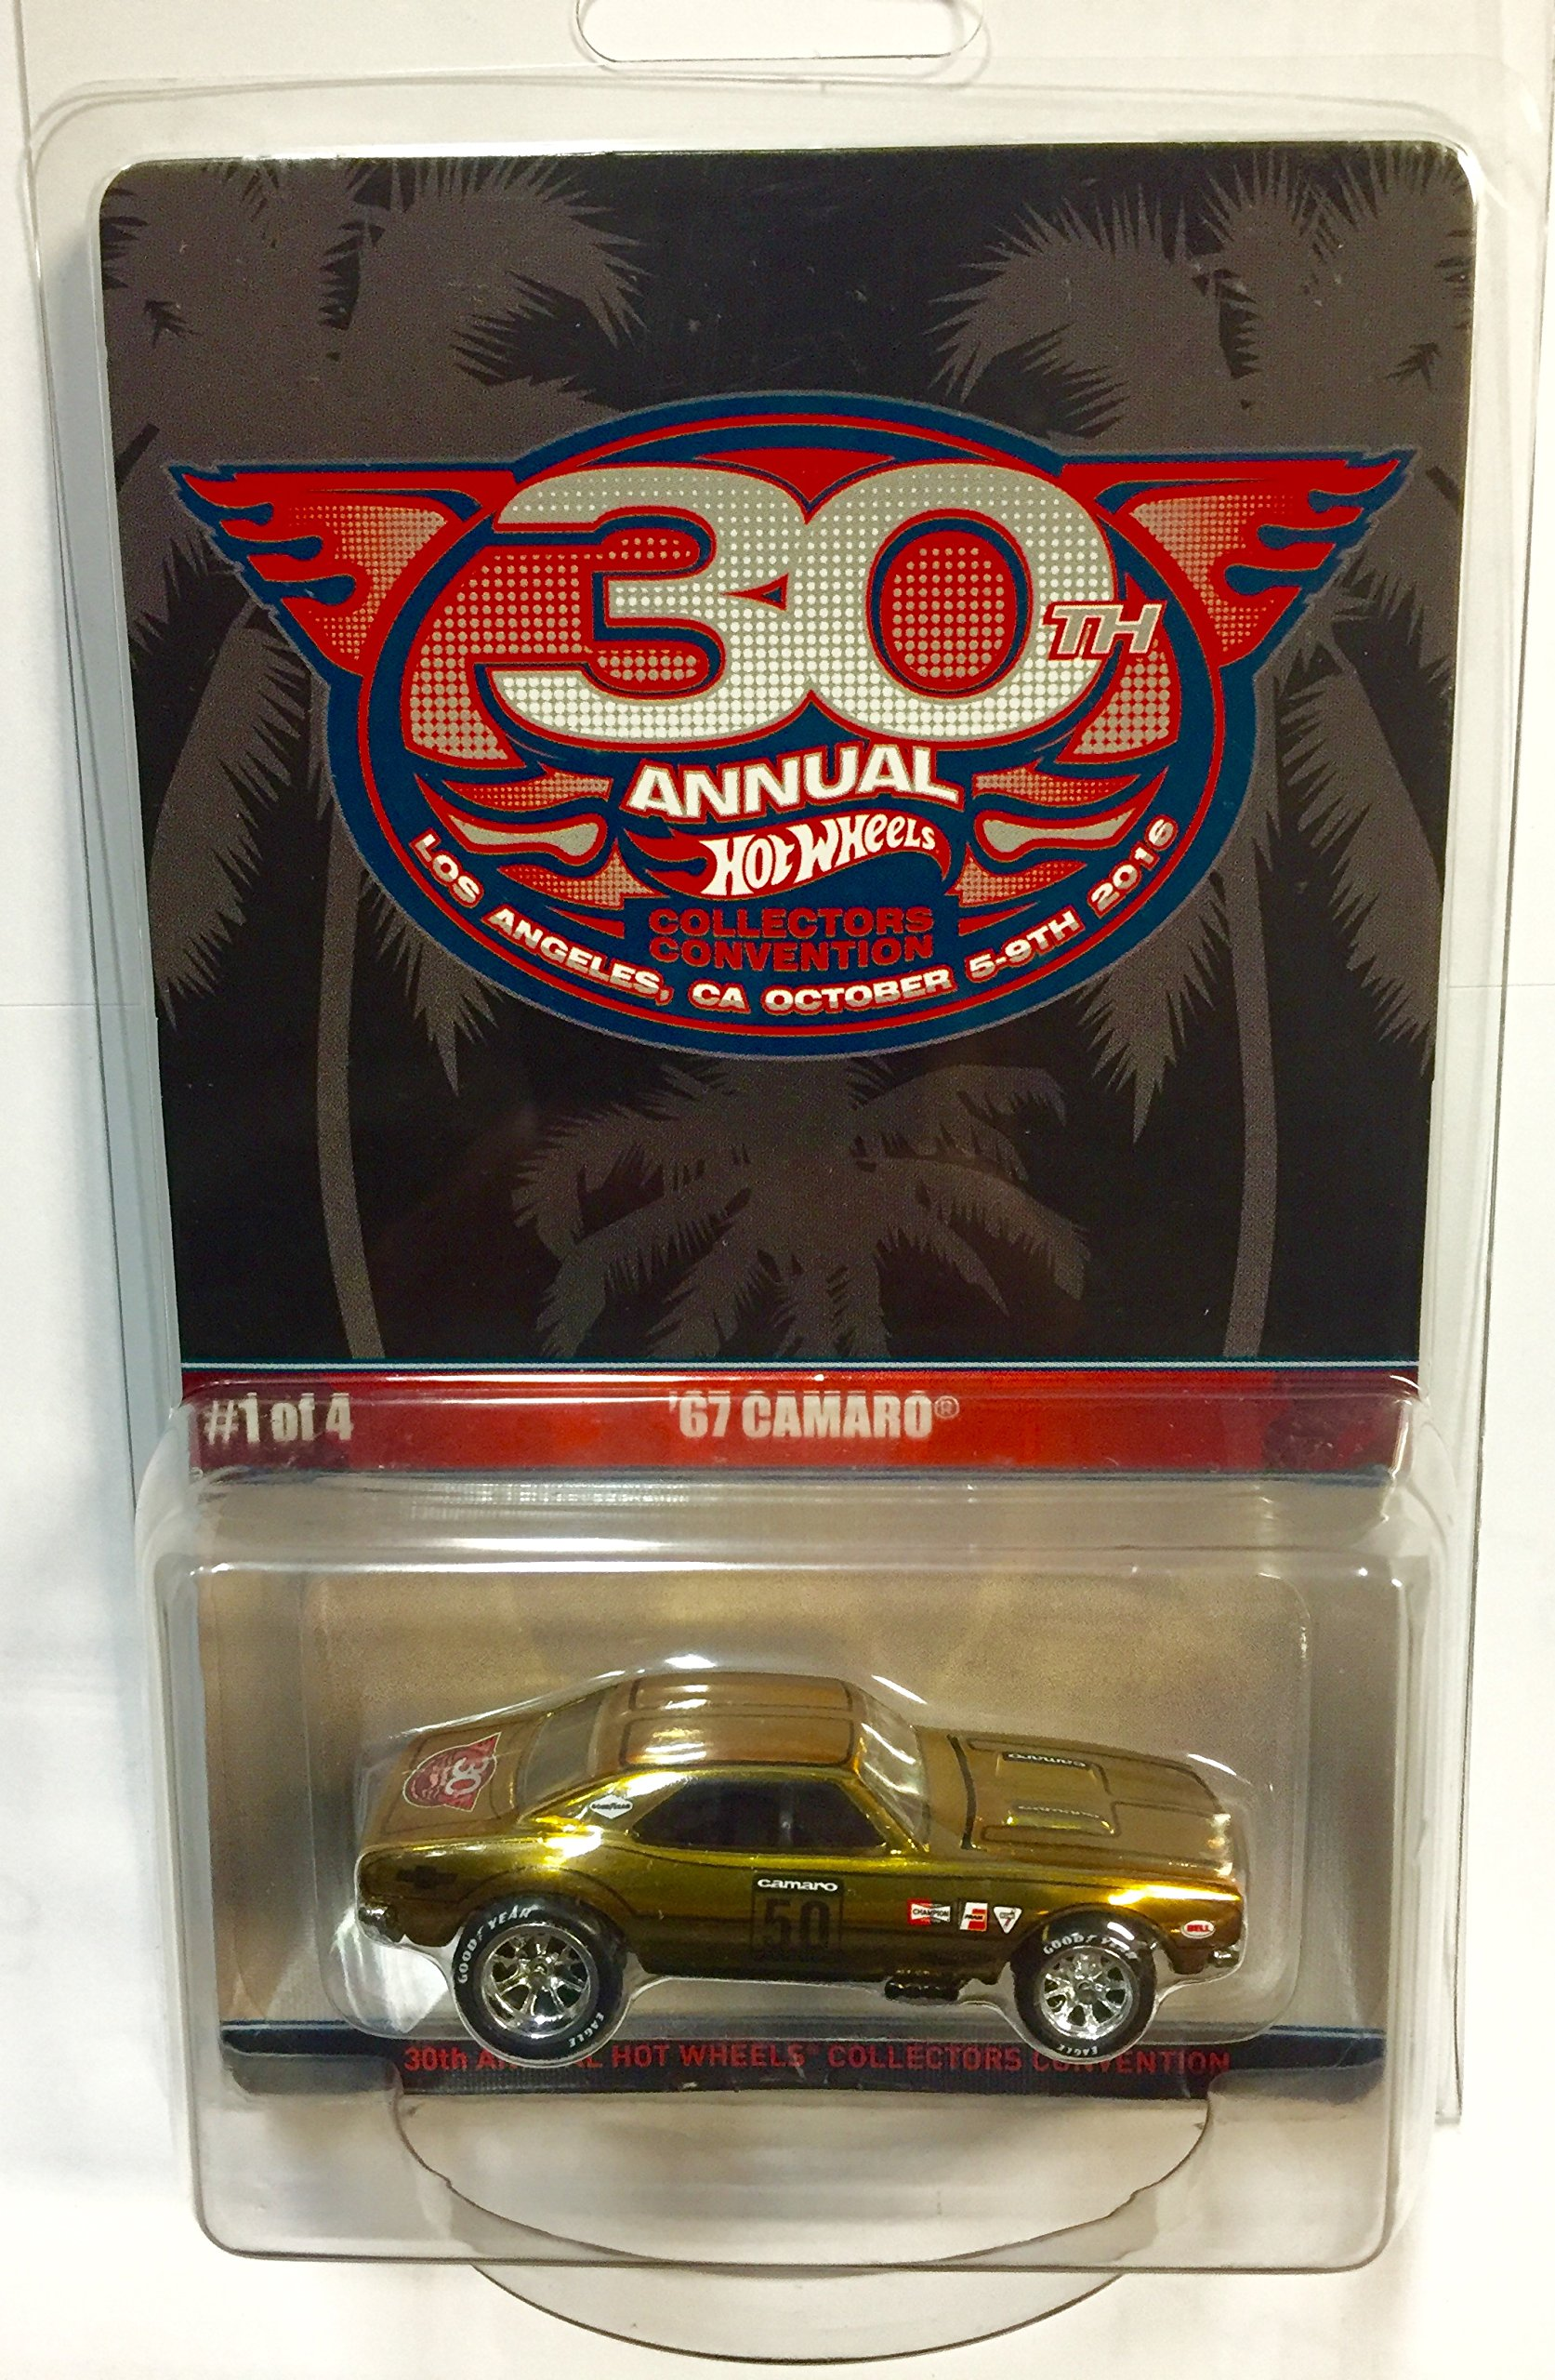 Hot Wheels 30th Annual Collectors Convention '67 Camaro Limited To 2600 Individually Numbered Cars